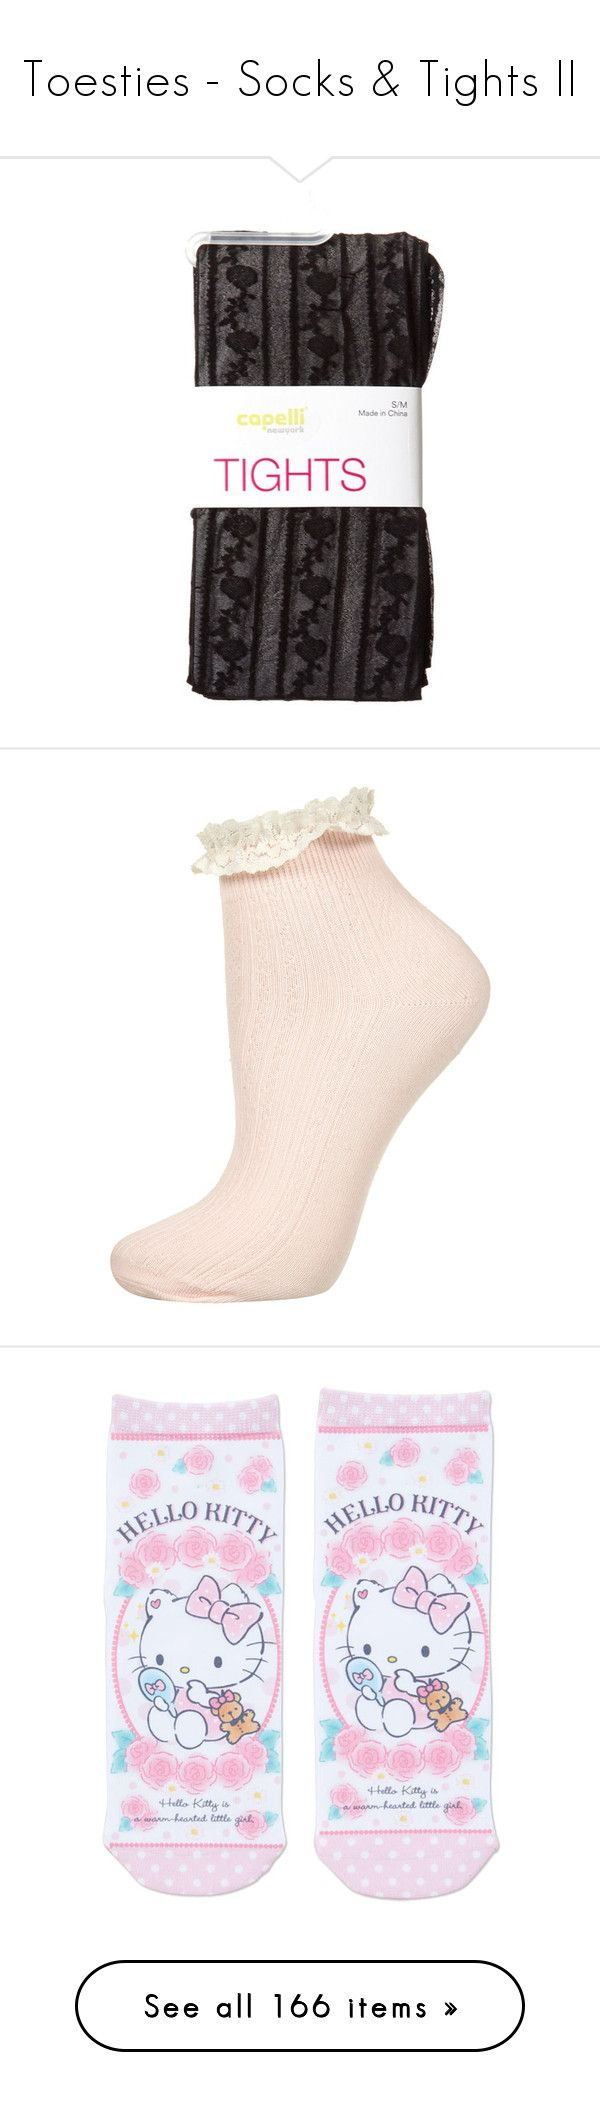 """""""Toesties - Socks & Tights II"""" by cat-on-wheels ❤ liked on Polyvore featuring intimates, hosiery, tights, accessories, socks, leggings, stripe tights, floral tights, striped tights and floral print tights"""